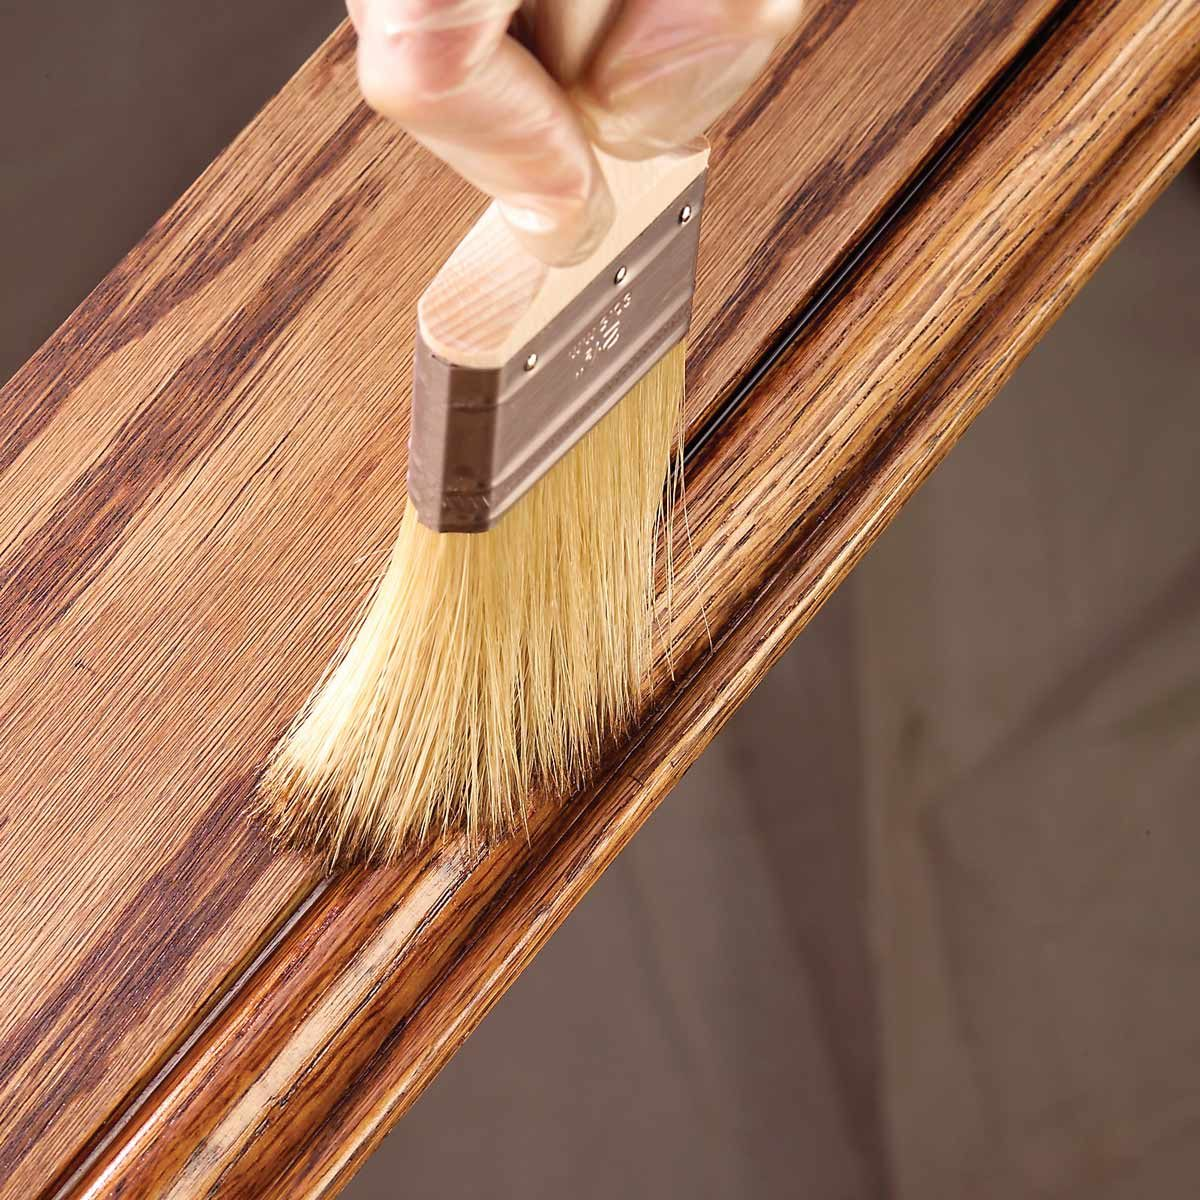 Dry-Brush Crevices